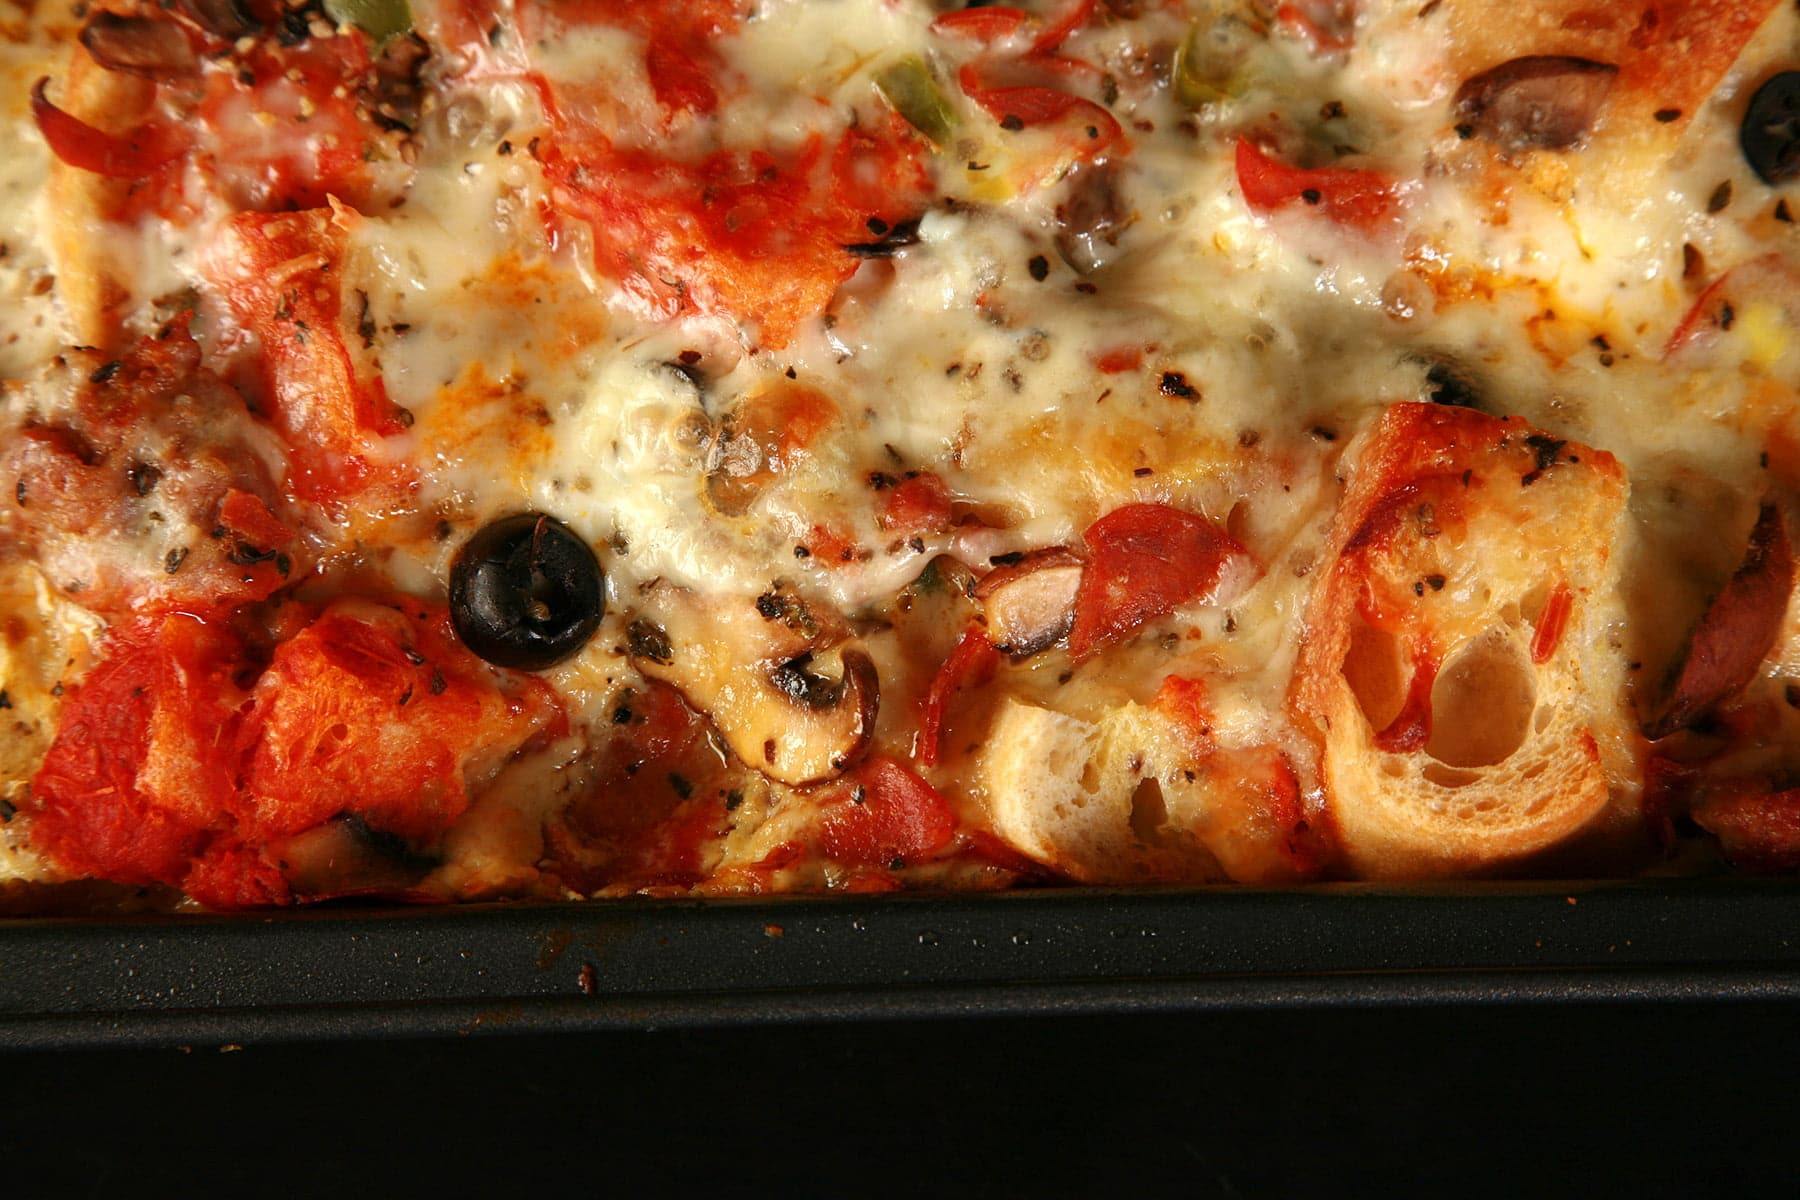 A pan of deluxe pizza bread pudding: A brunch casserole featuring pepperoni, sausage, mushrooms, green peppers, black olives, marinara sauce, and cheese.